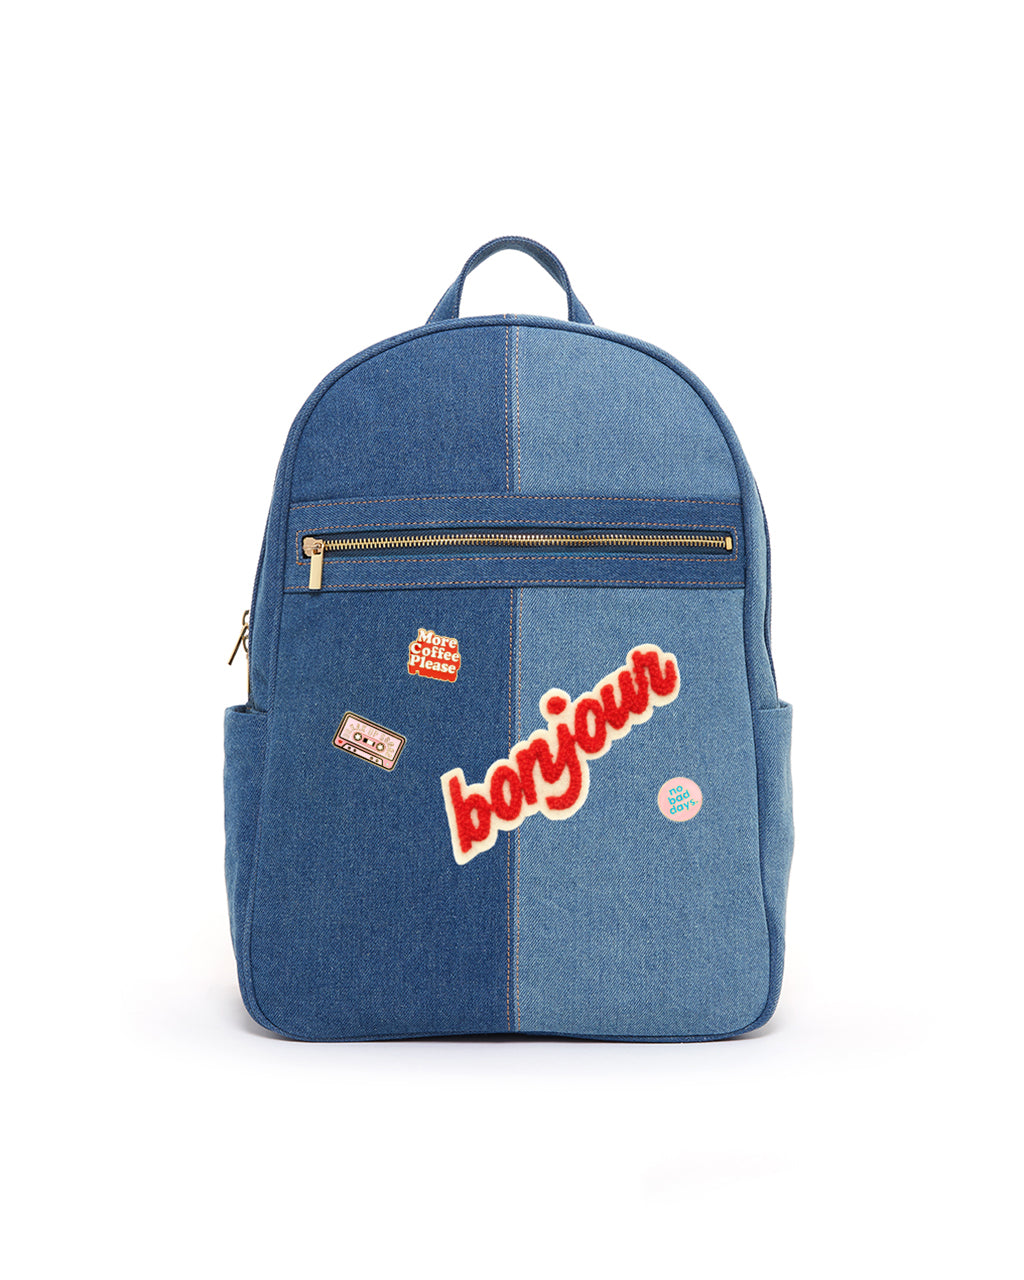 deck out a backpack bundle - denim/flair